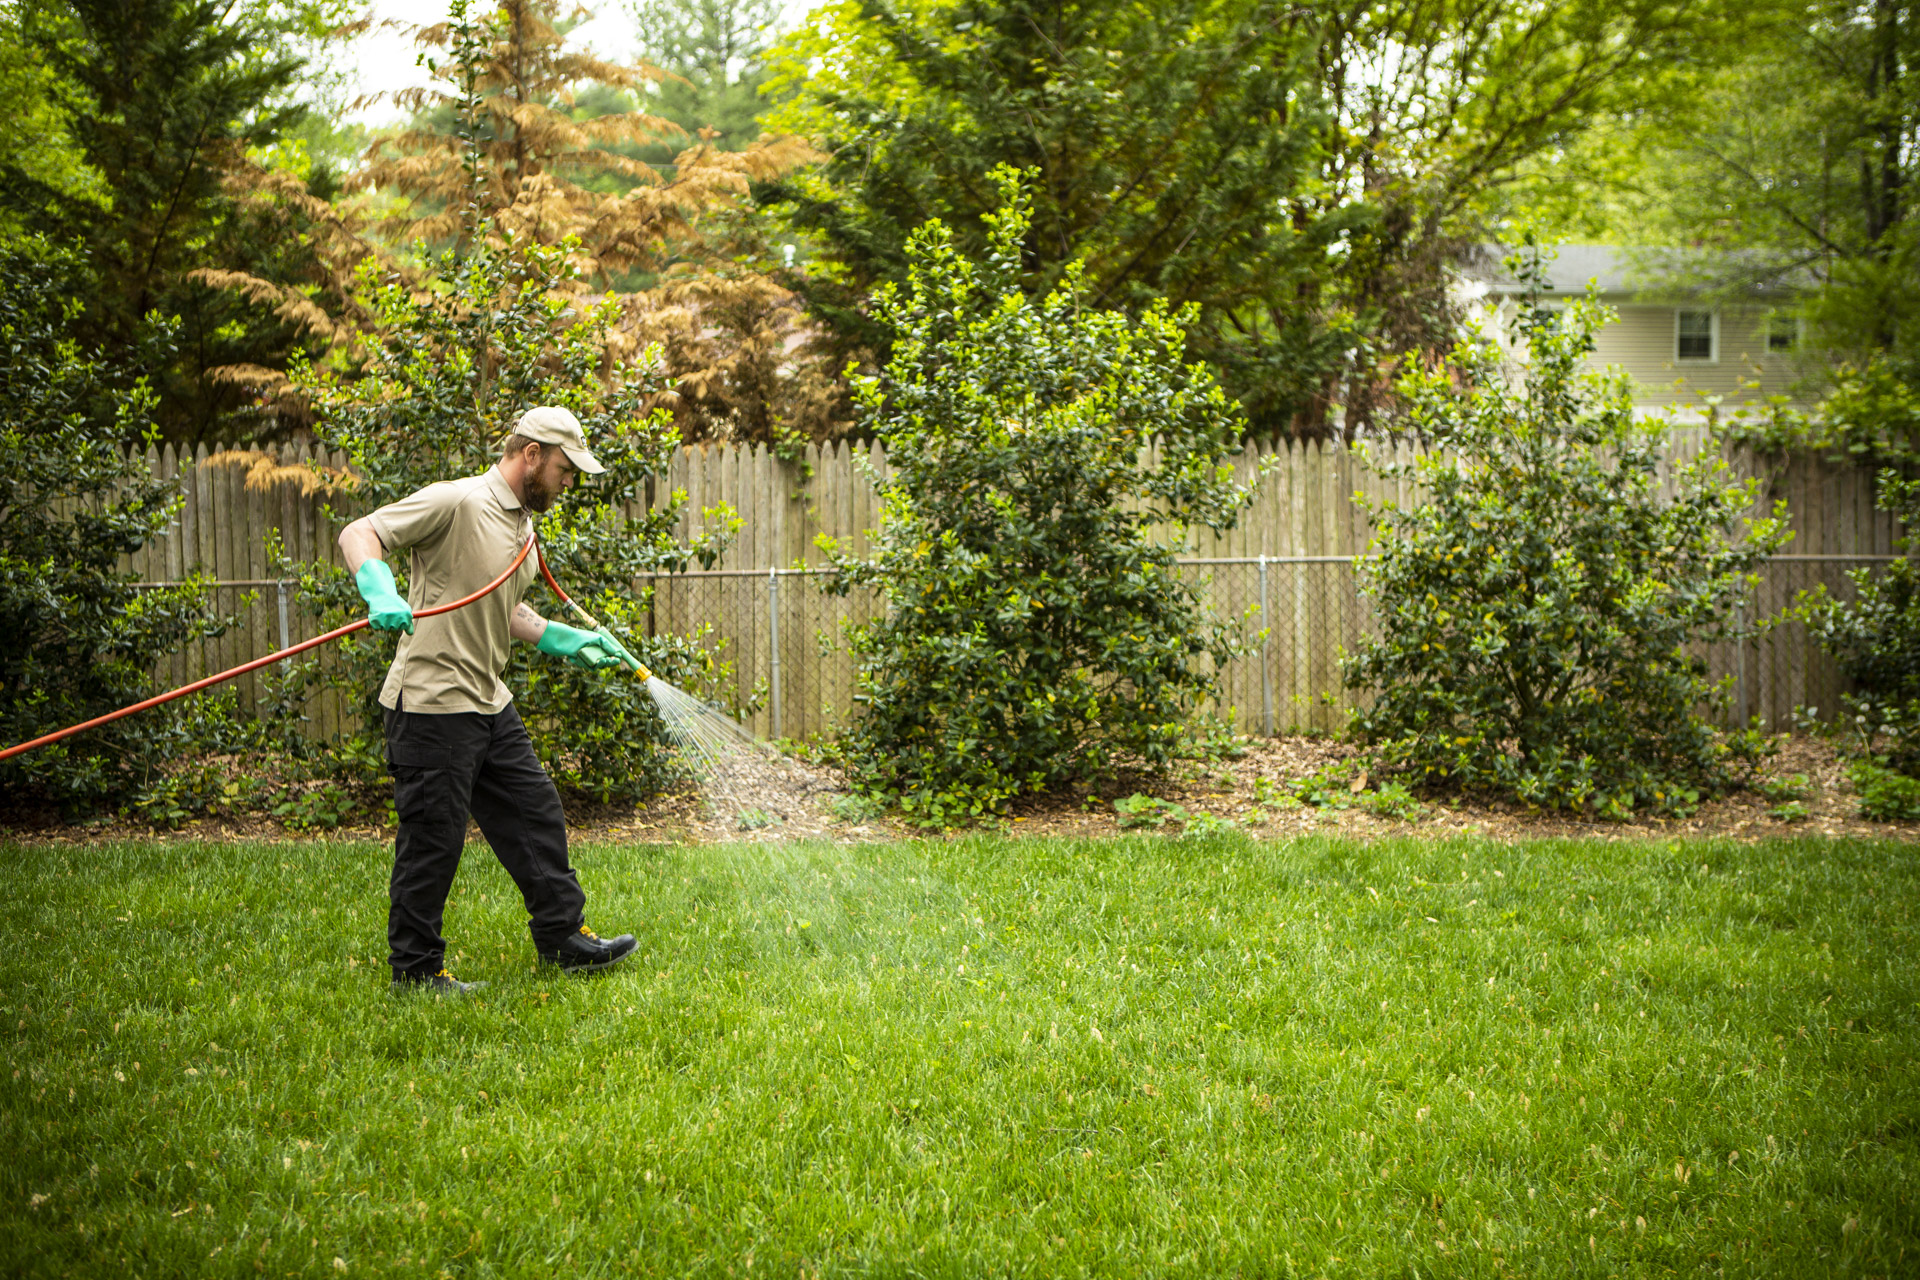 lawn care technician spraying weed control